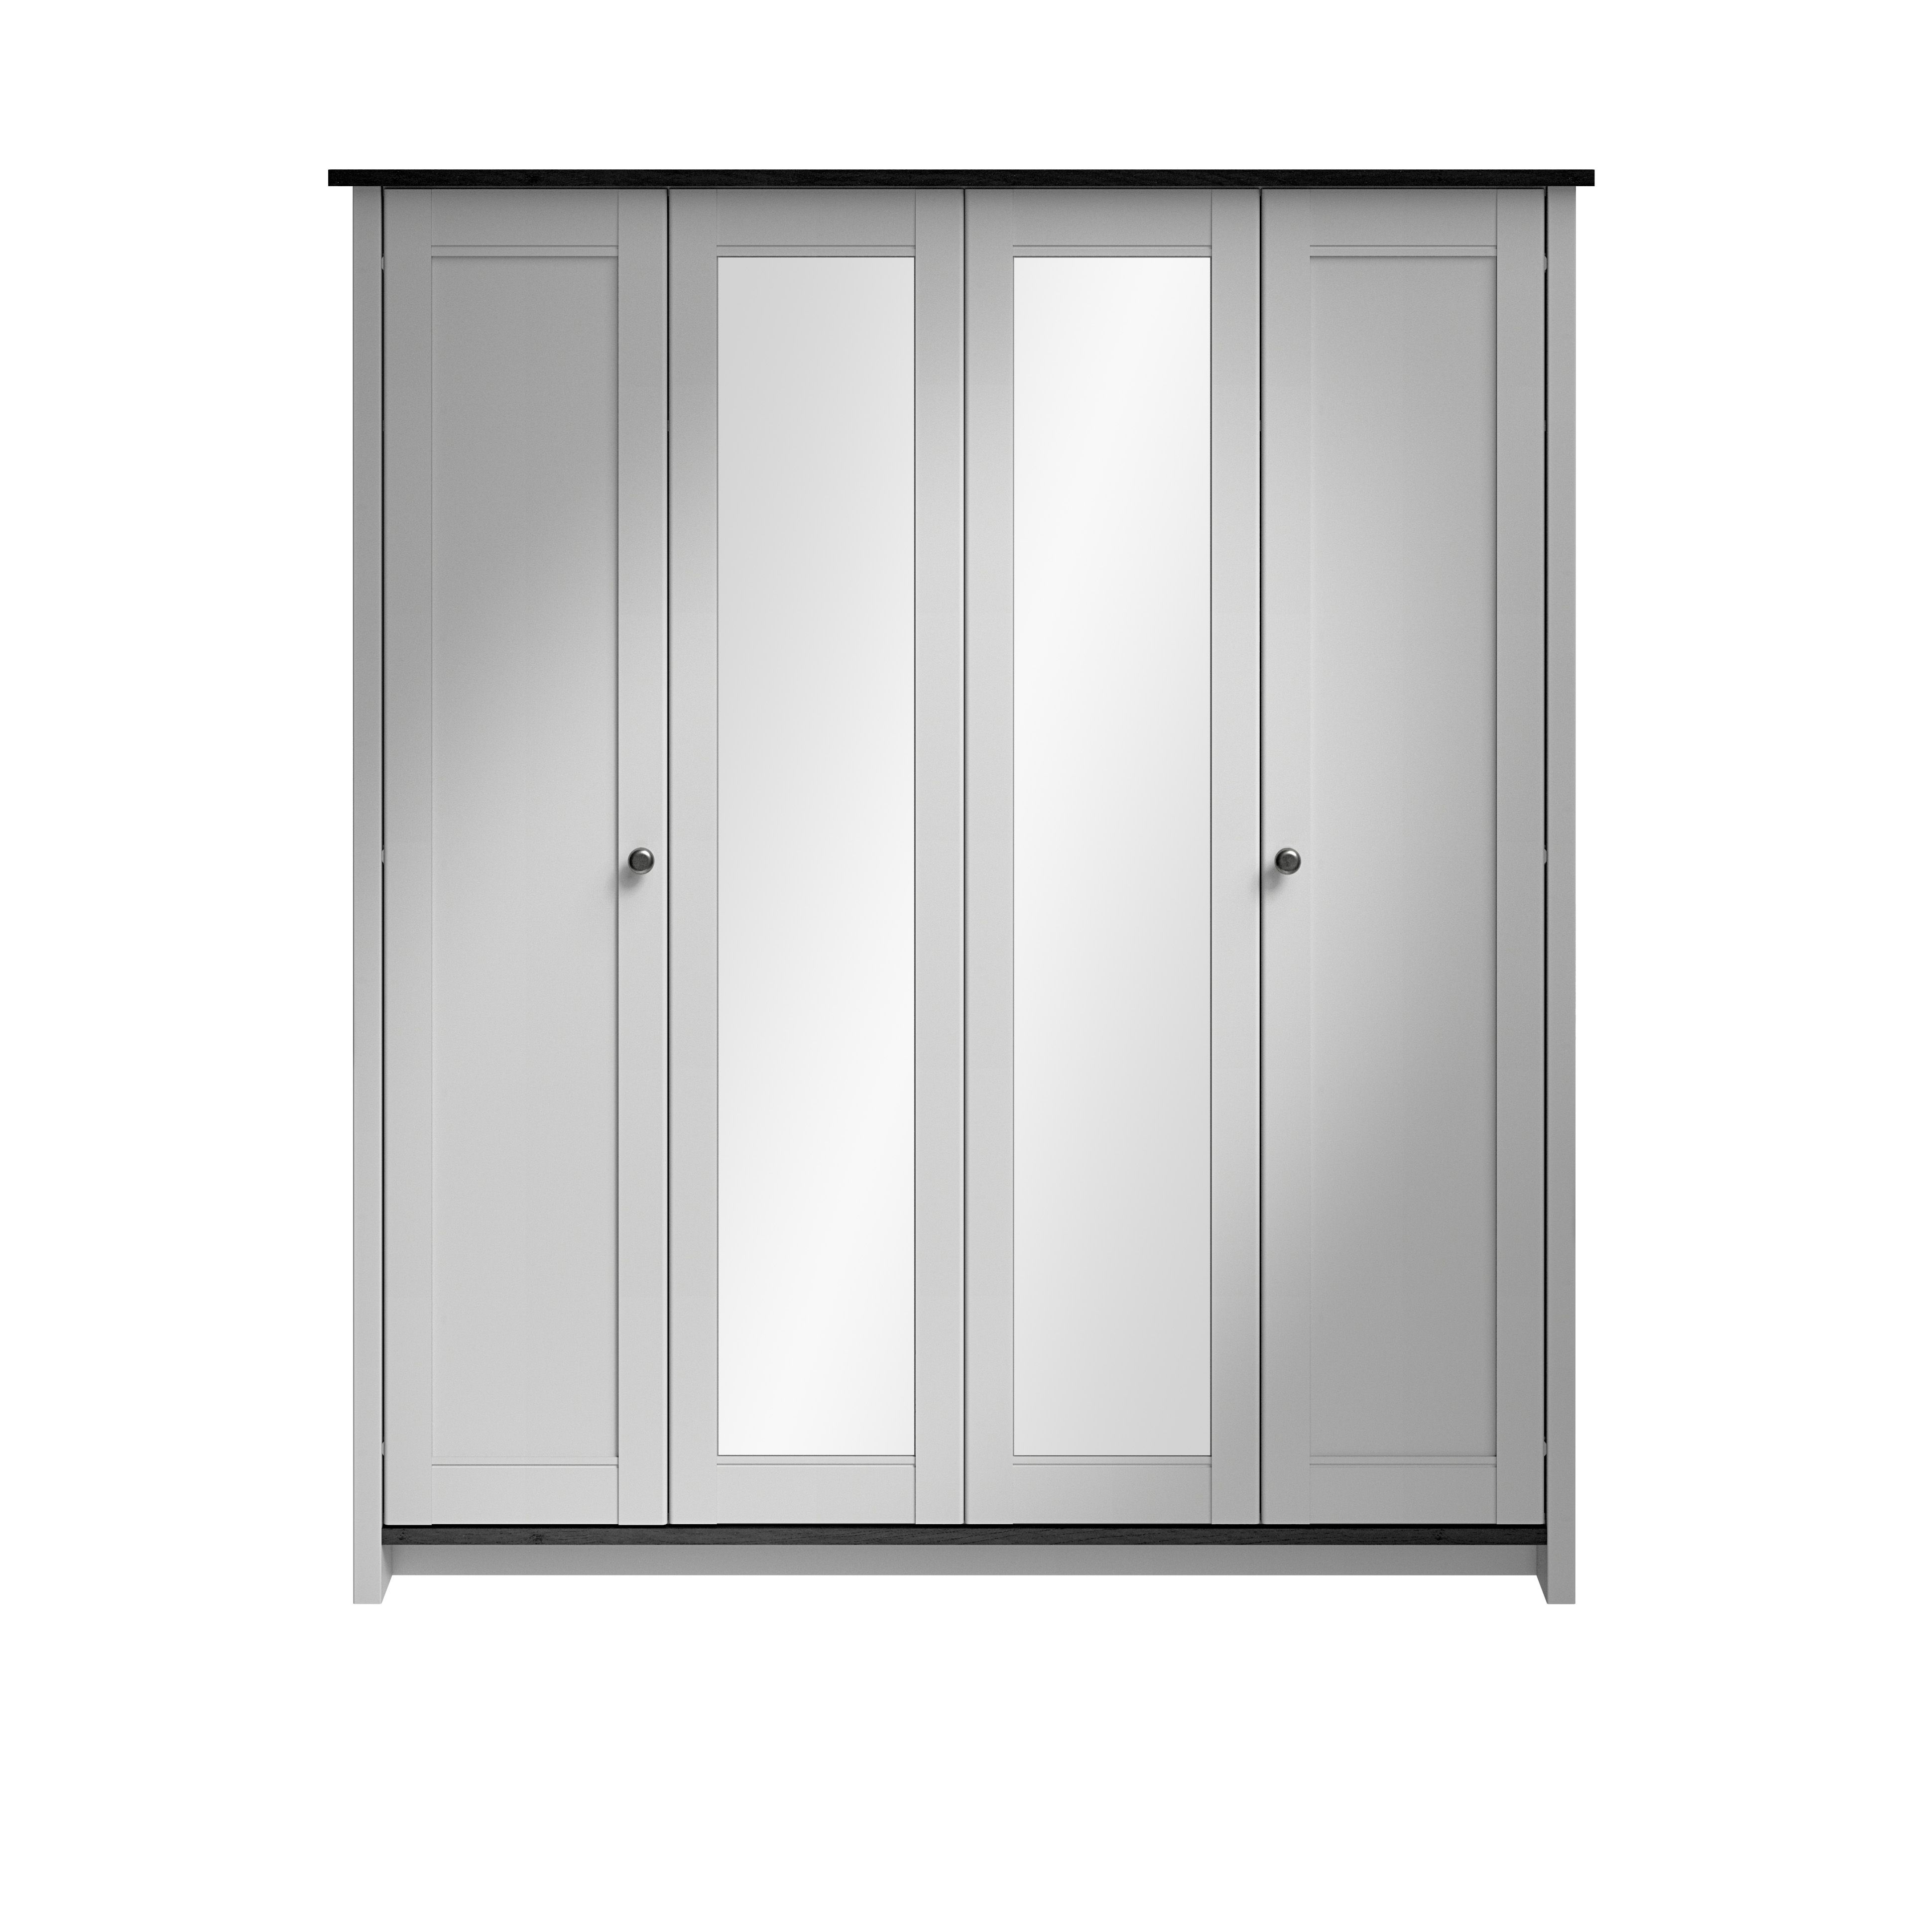 wardrobe ie sloping ceiling platsa en storage furniture perfectly spr or skatval fits light modular grey under system a ikea staircase cm products white